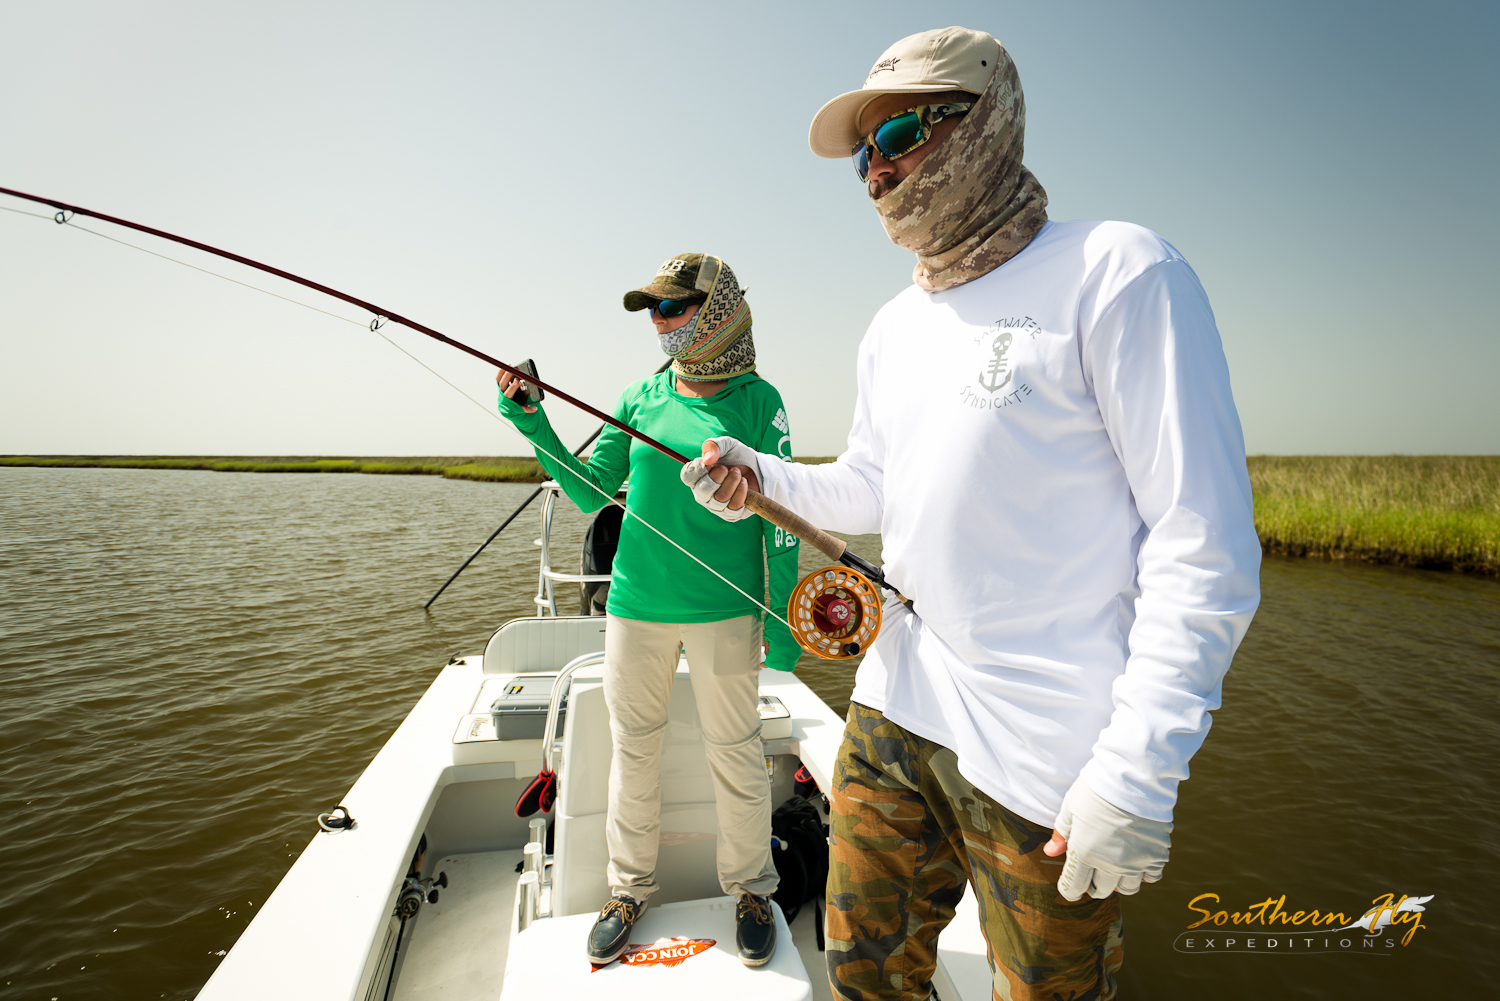 Fly Fishing New Orleans with Southern Fly Expeditions LLC